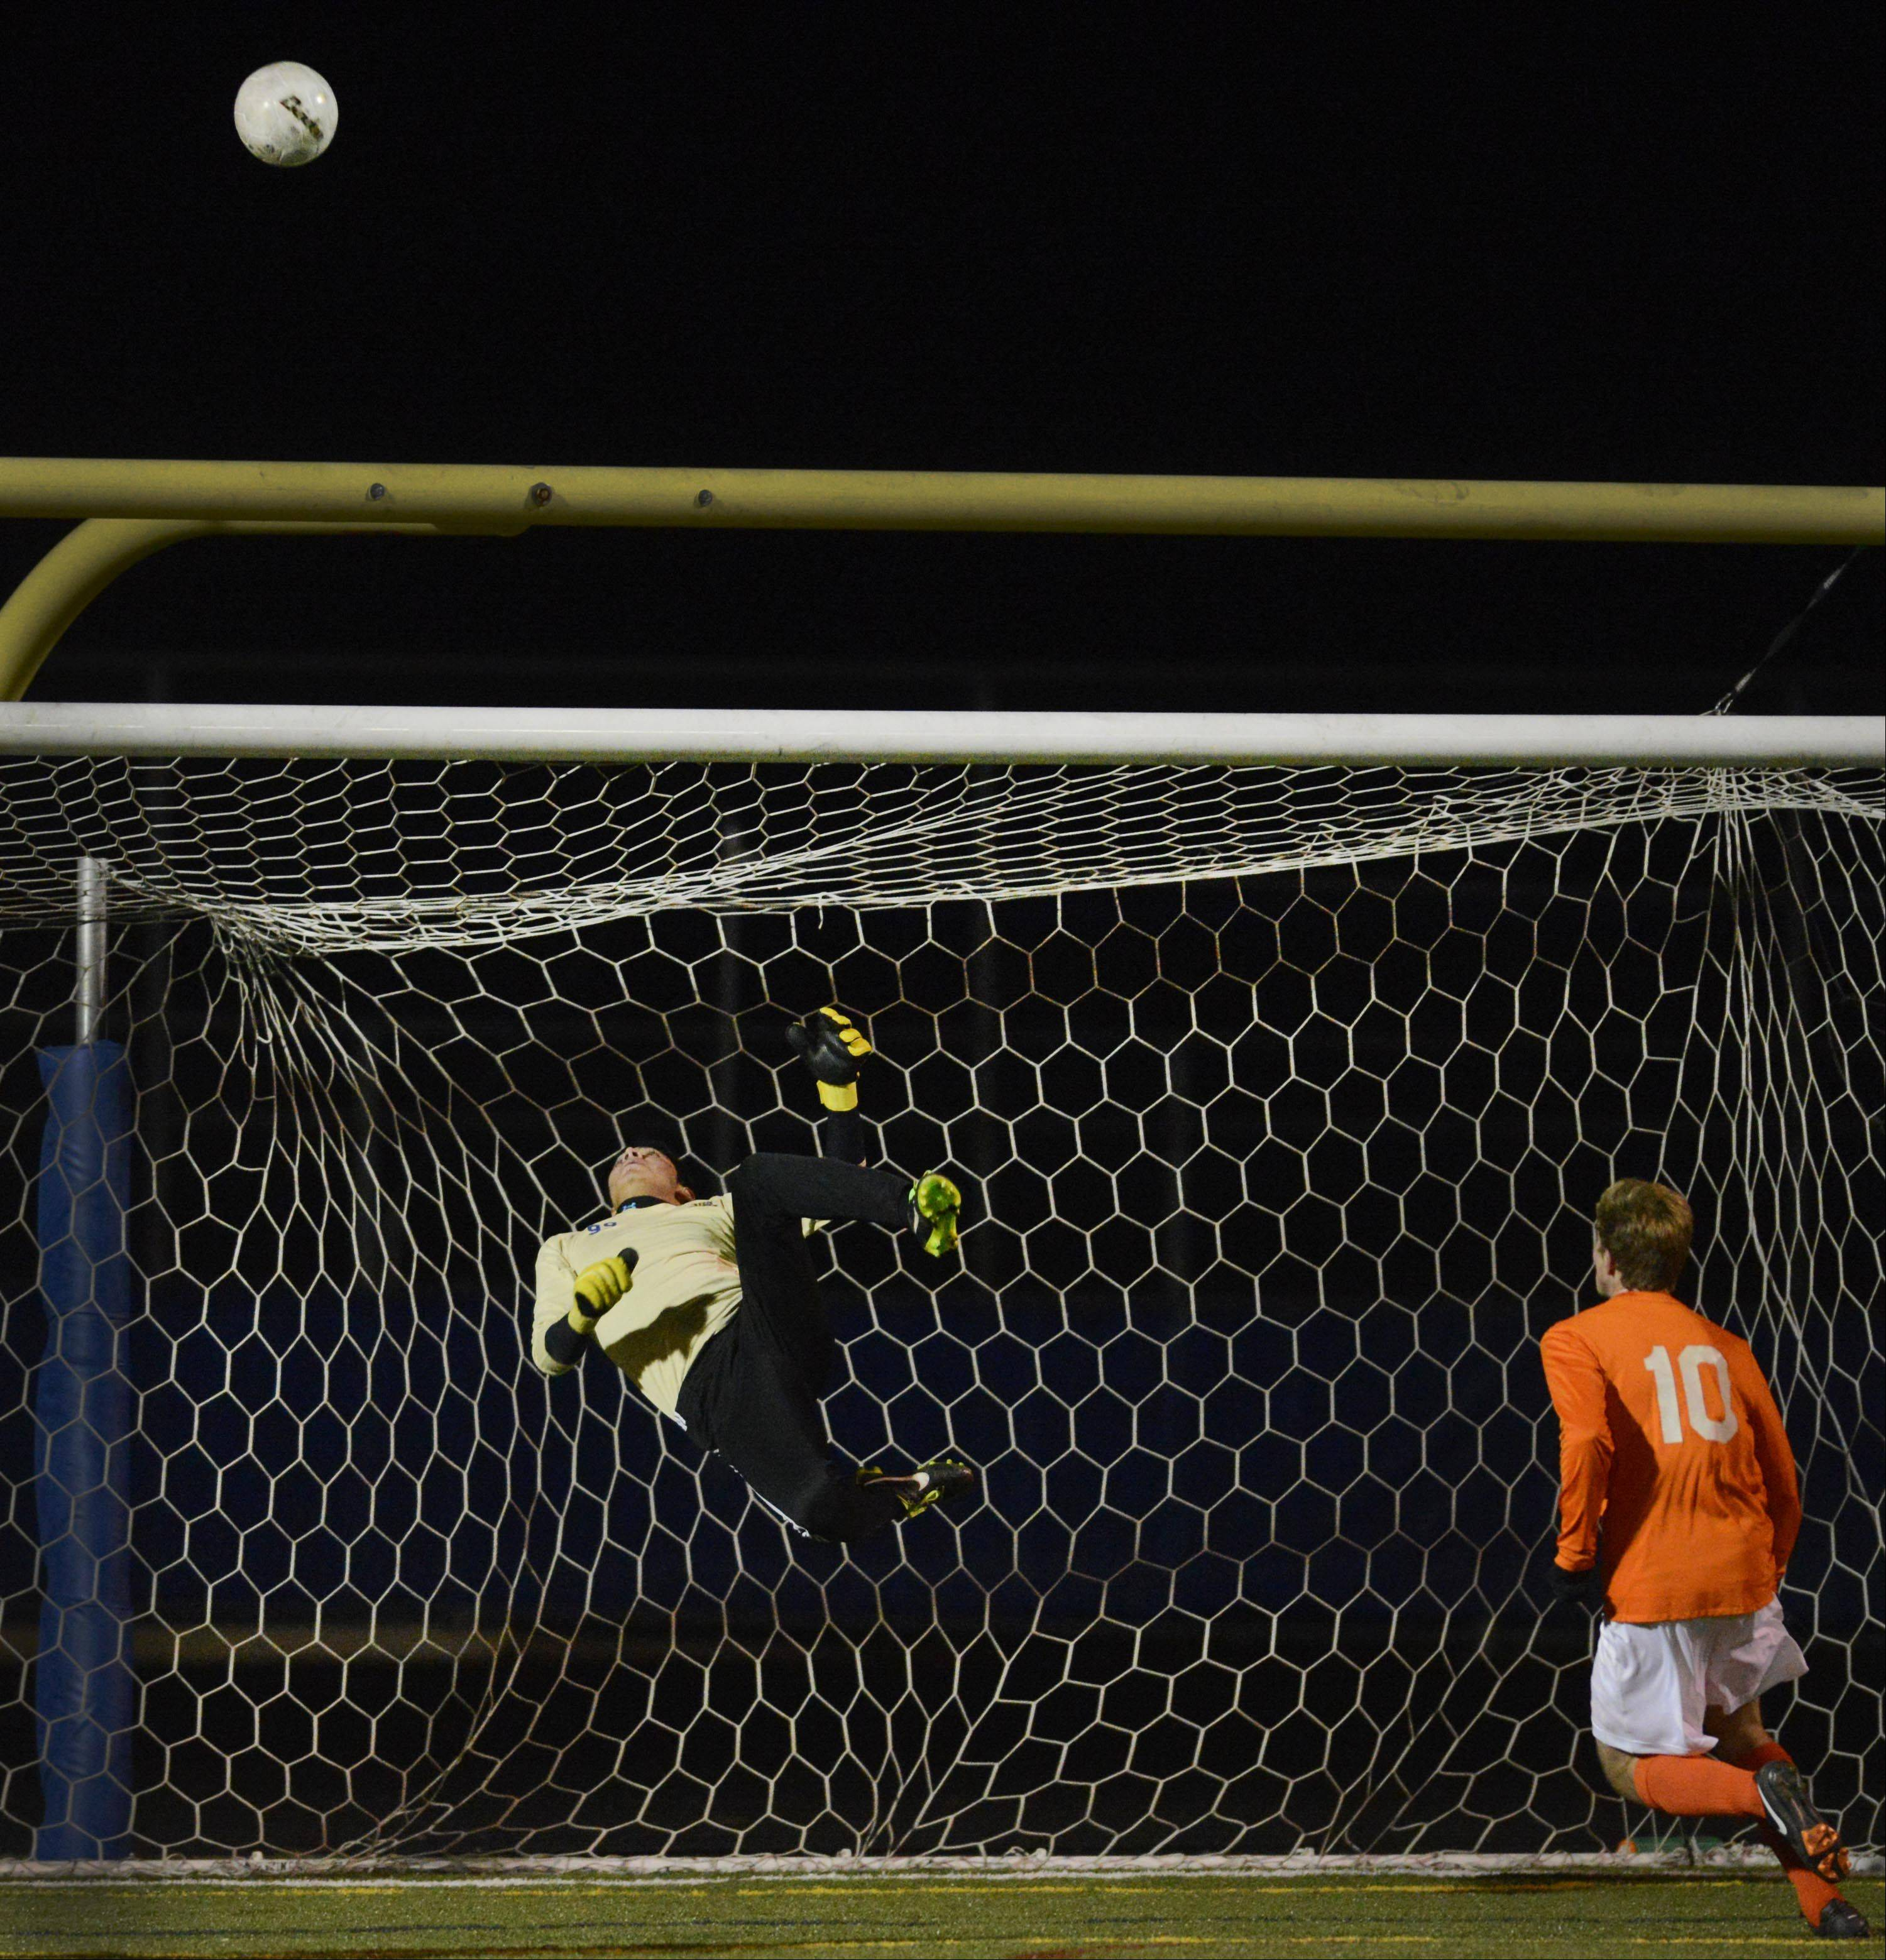 Wheeling goalkeeper Gary Mendoza watches a shot he deflected from Edwardsville's Lando Paul bounce up and over the net in the Class 3A boys soccer state championship game Saturday night in Hoffman Estates.